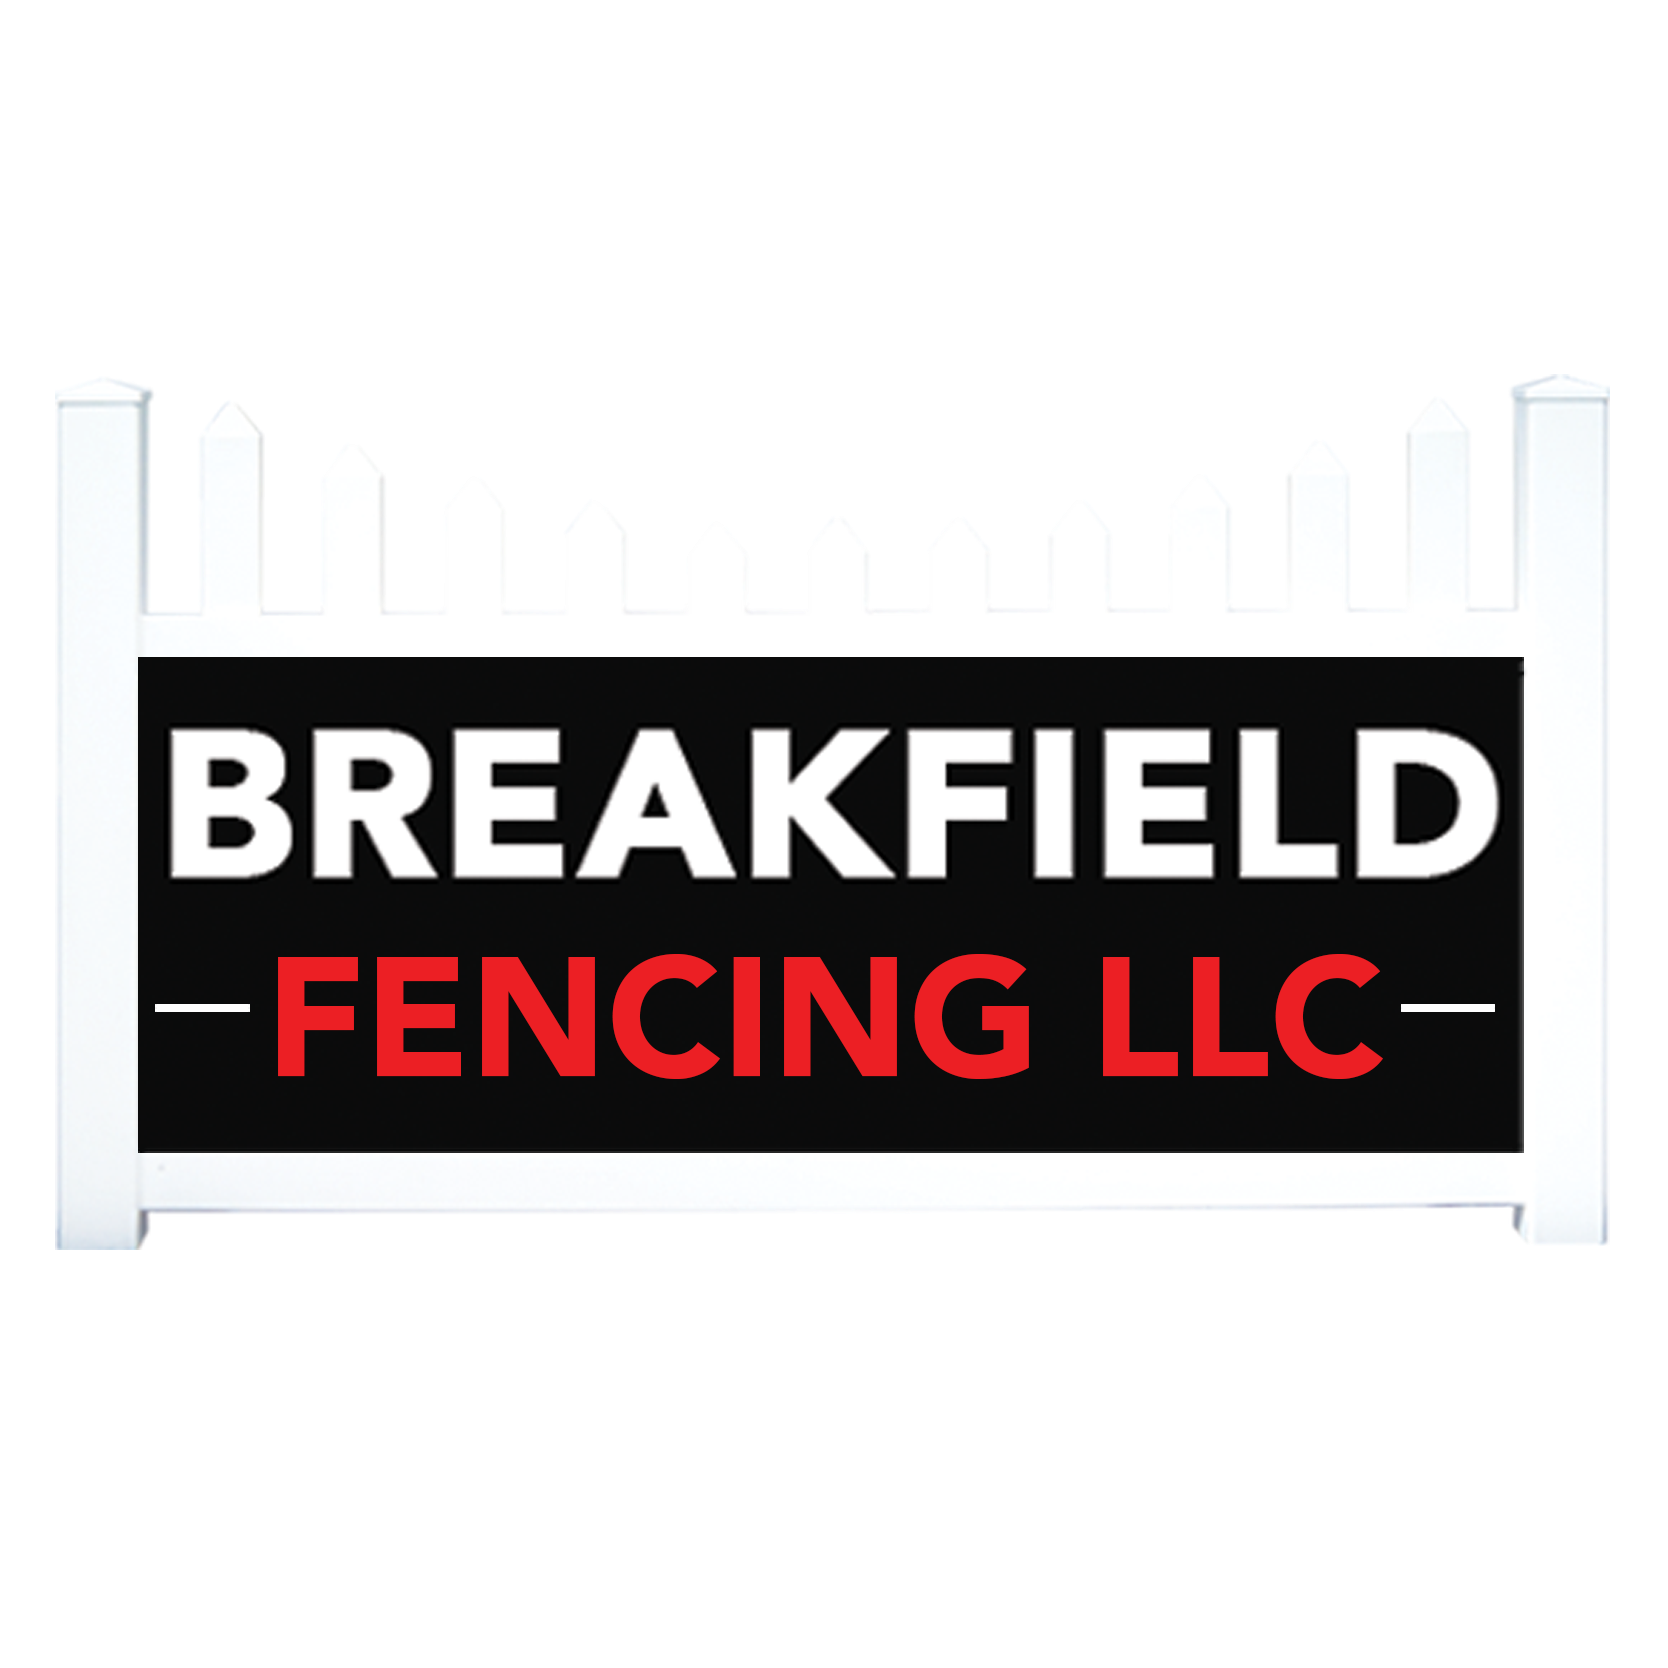 Breakfield Fencing, LLC